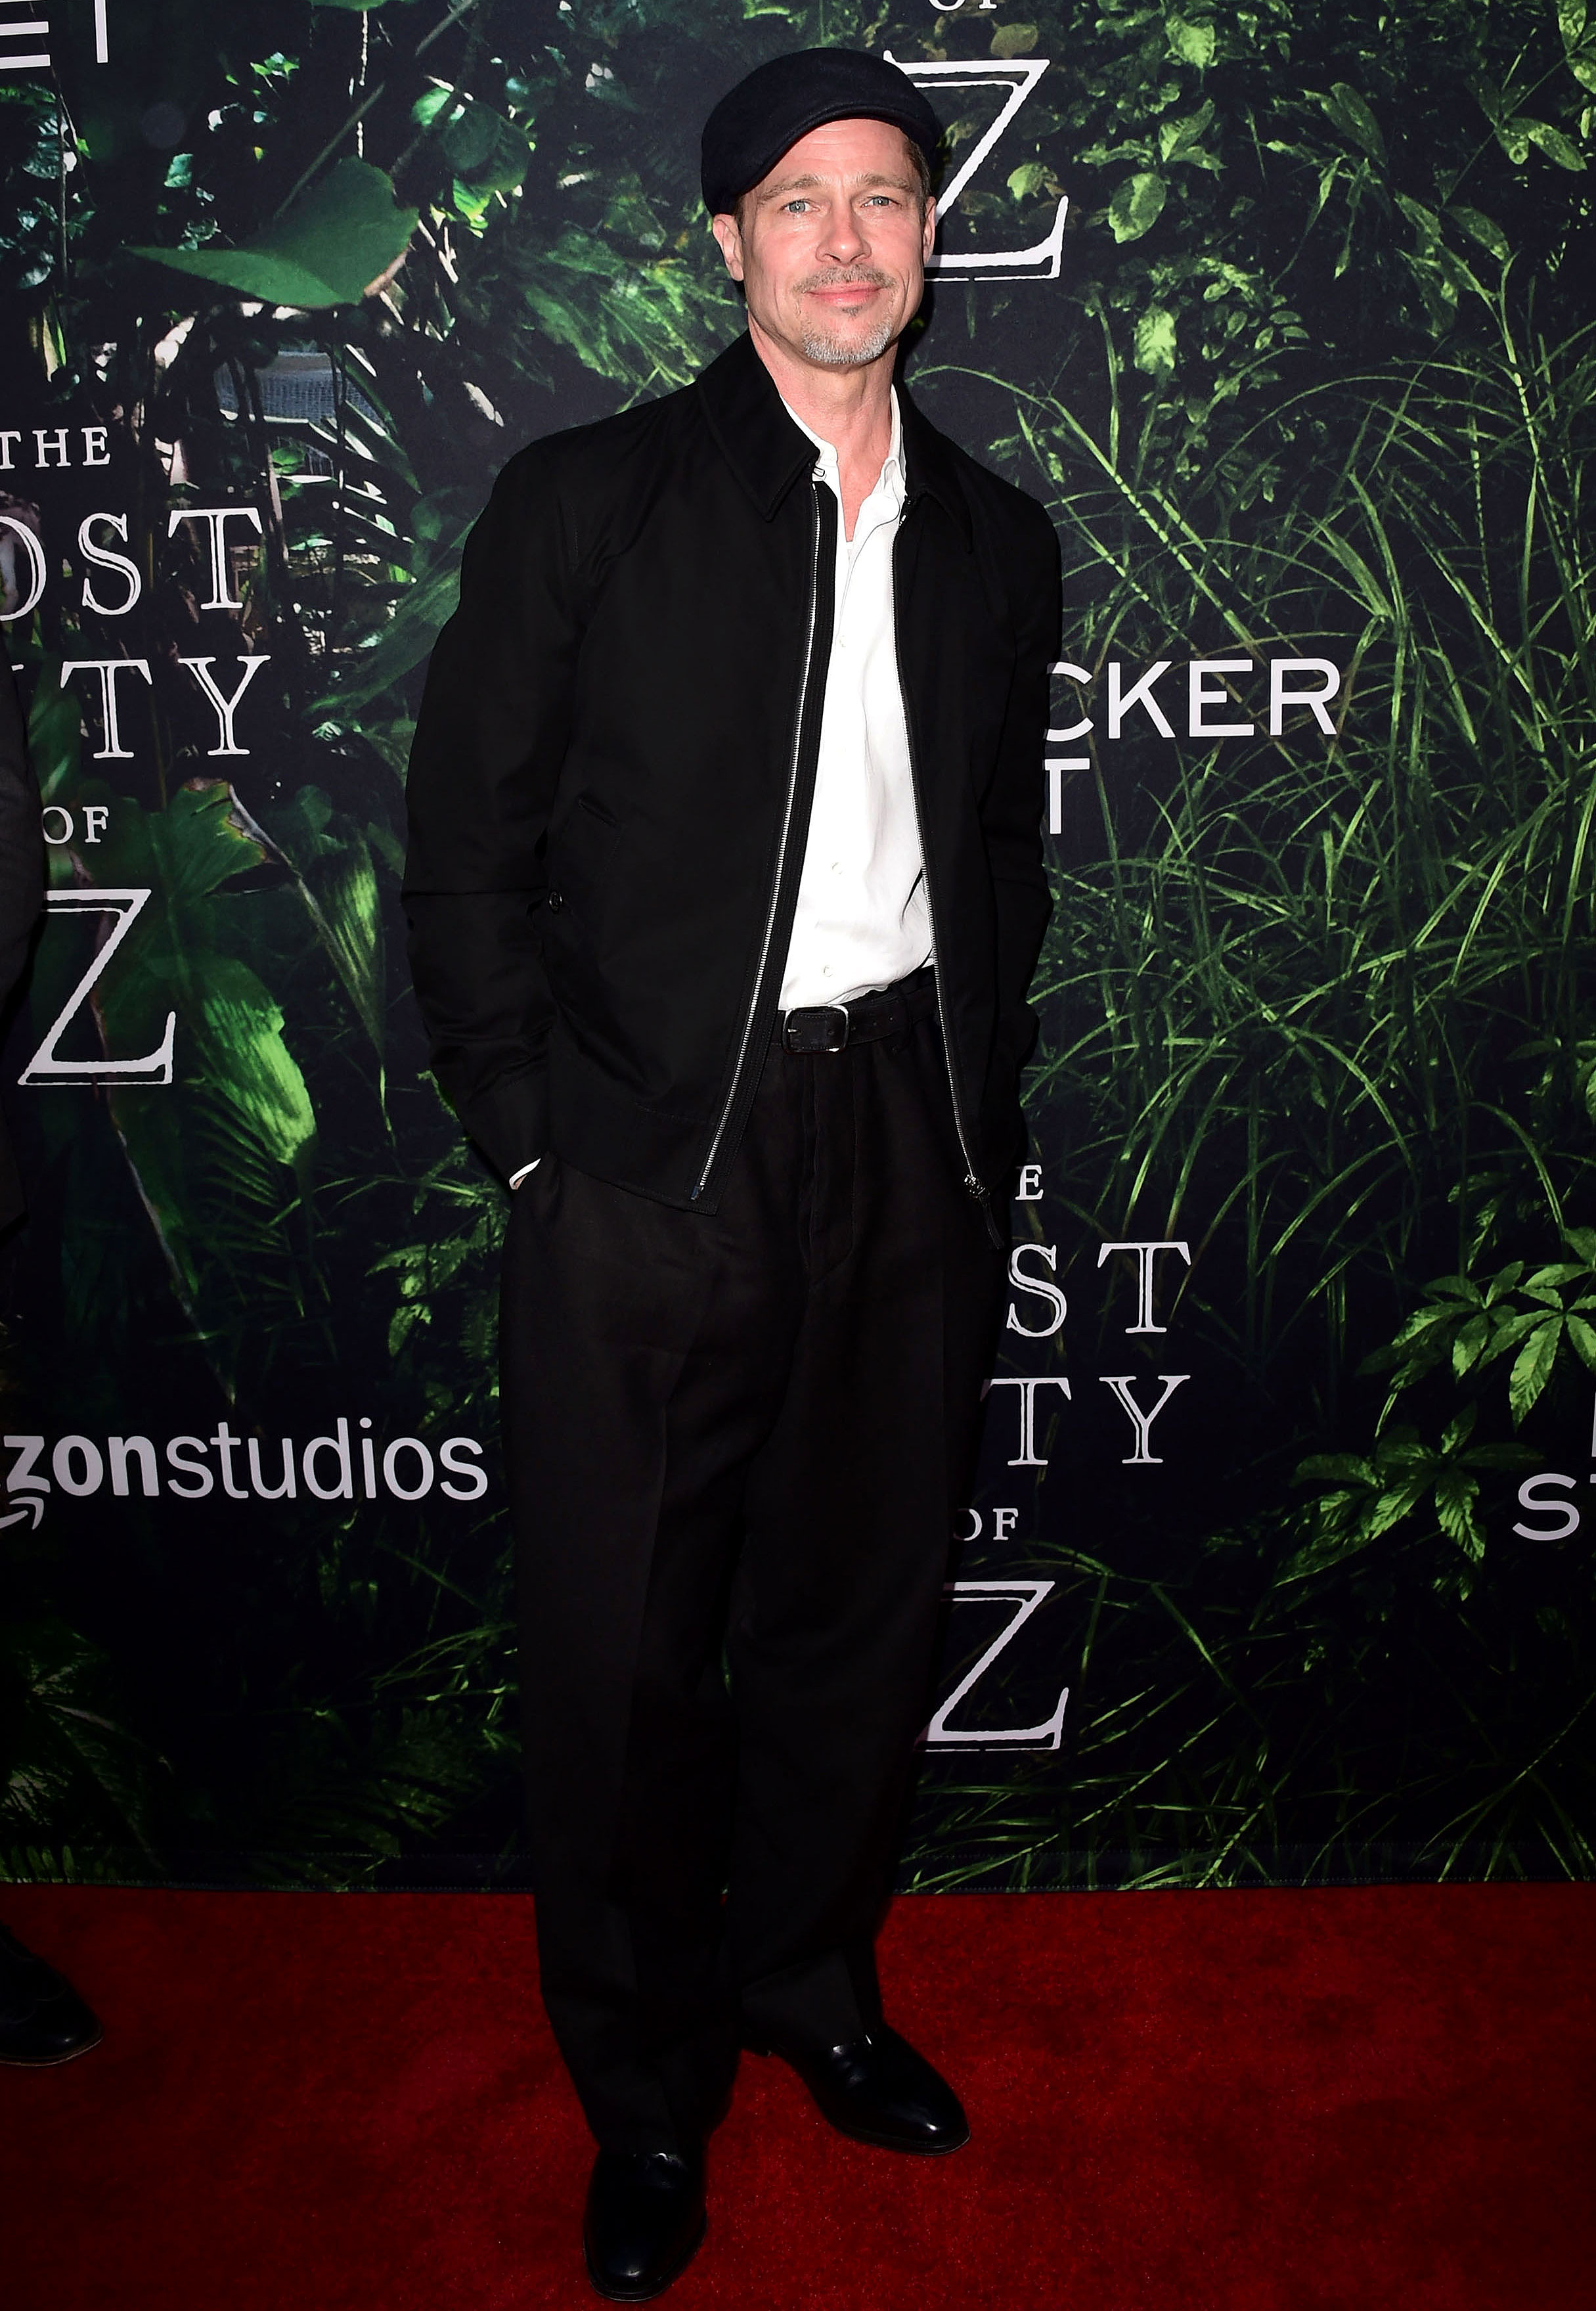 Brad Pitt - During The Lost City Of Z premier in L.A. on April 5, 2017, Pitt seemed to have hit a fashion low. He wore baggy black pants, a black bomber jacket and a flat cap